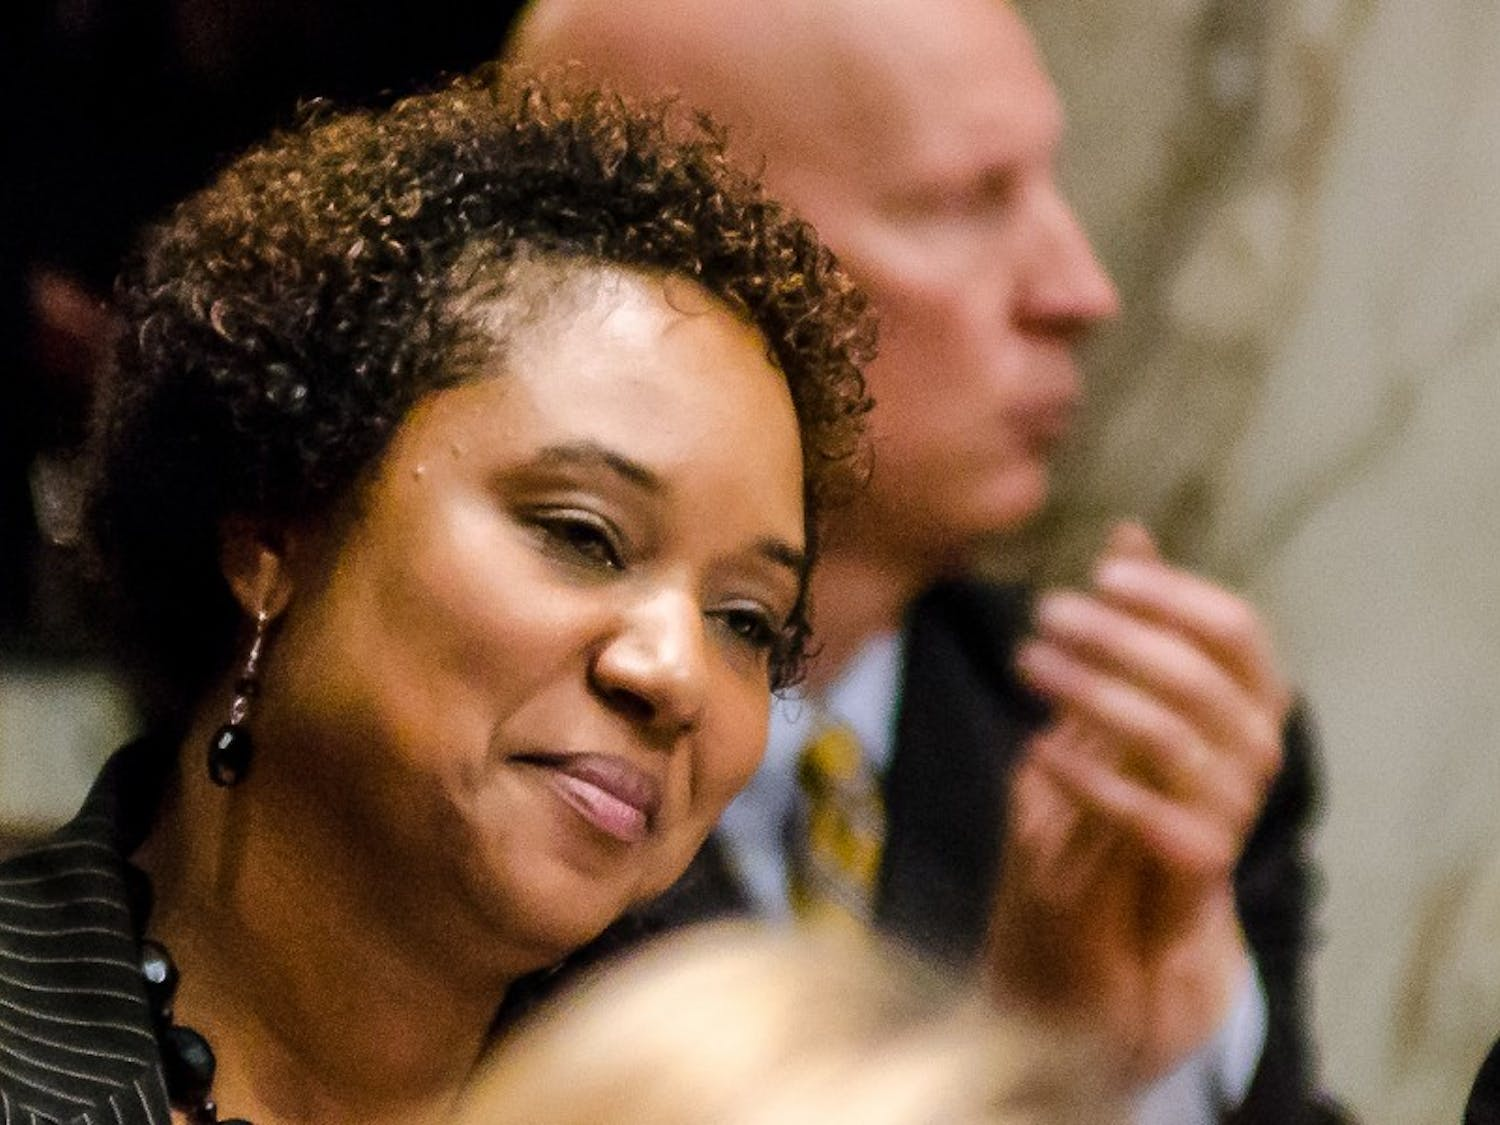 A text-in suicide prevention hotline could receive a state grant to stay open if a new bipartisan bill authored by state Sen. Lena Taylor, D-Milwaukee, passes.